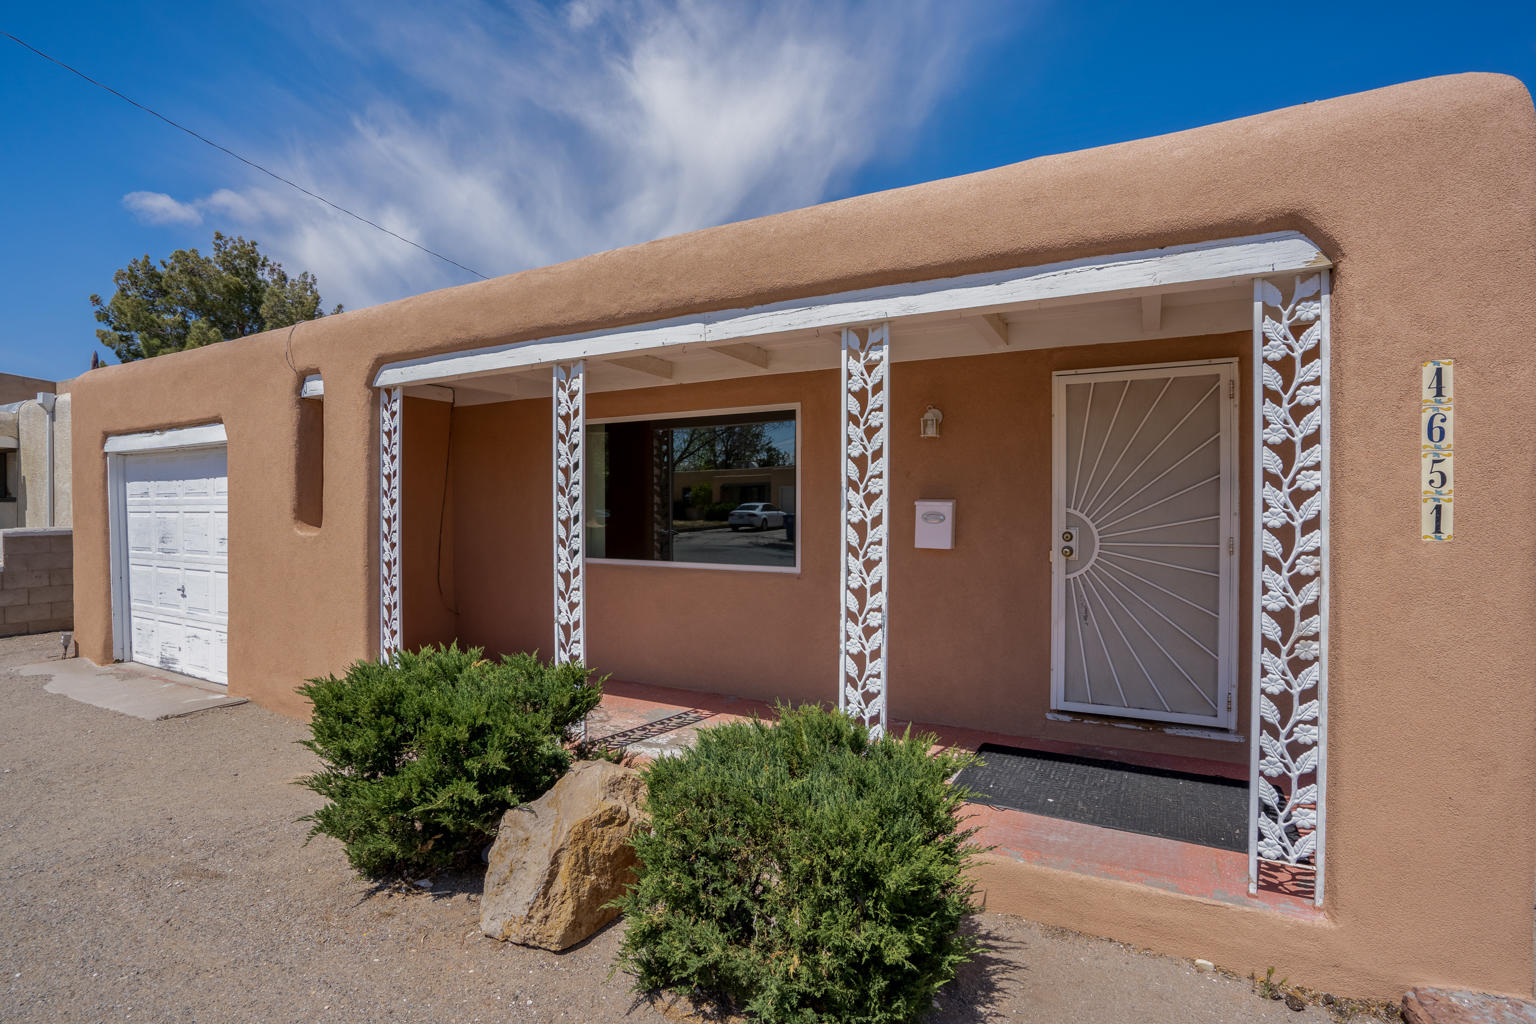 Wonderful Property located in the Ridgecrest Neighborhood. Close to the Nob Hill shopping and restaurants - a quiet neighborhood with plenty of walking and cycling areas and parks.This home offers a new tar roof installed by Alvarado Roofing with a 6-year limited roof warranty (transferable). New windows installed by Renewal by Andersen and new stucco also done by Renewal by Andersen. New shed in backyard installed by Tuff Shed. New Paint in front room, dining room and family room. Family Room could be turned into Master Suite for possible 3rd bedroom. The interior is waiting to be updated!! You can give it your own personal touch, the possibilities are endless! Bring your vision and creativity to make this wonderful home your own!